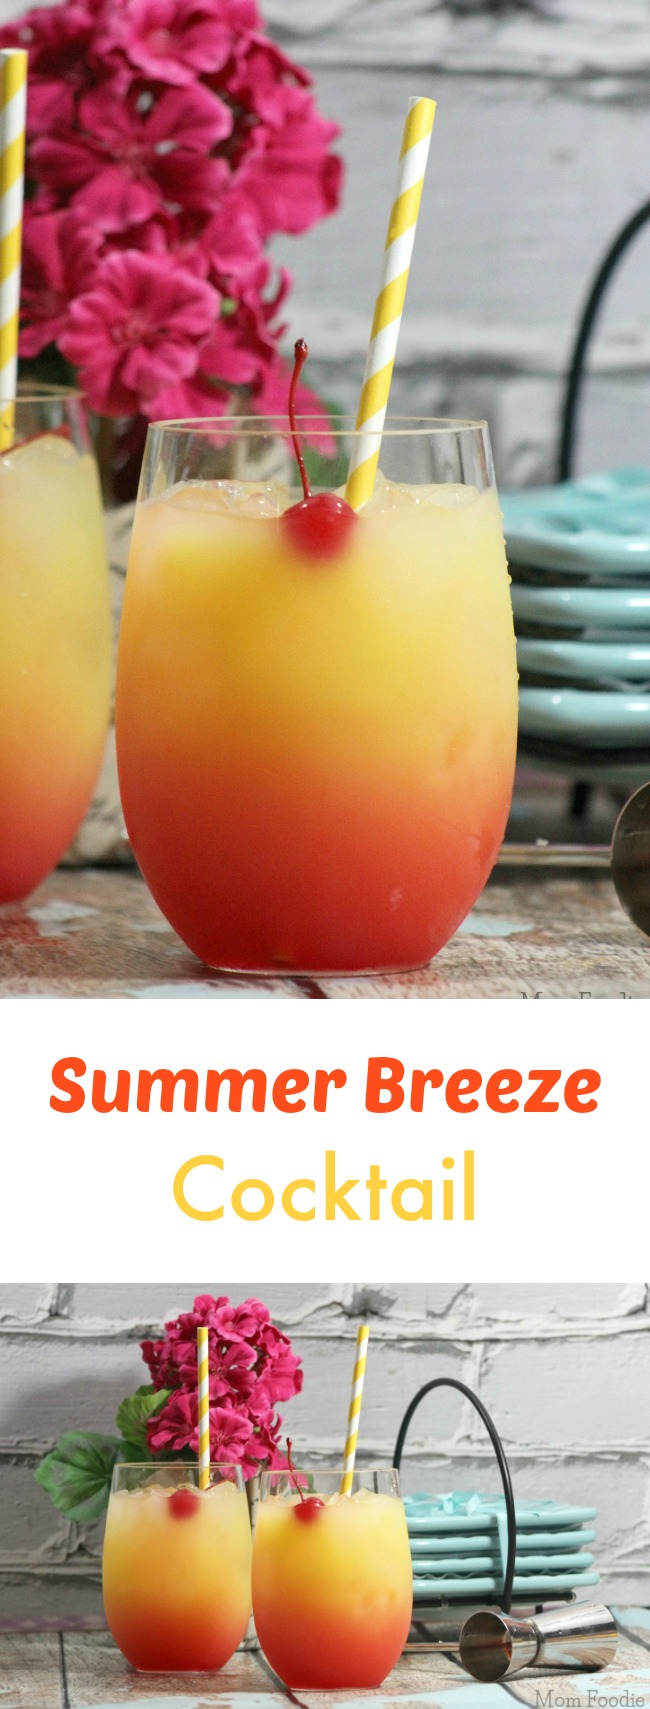 Summer Breeze Cocktail Recipe- great for parties